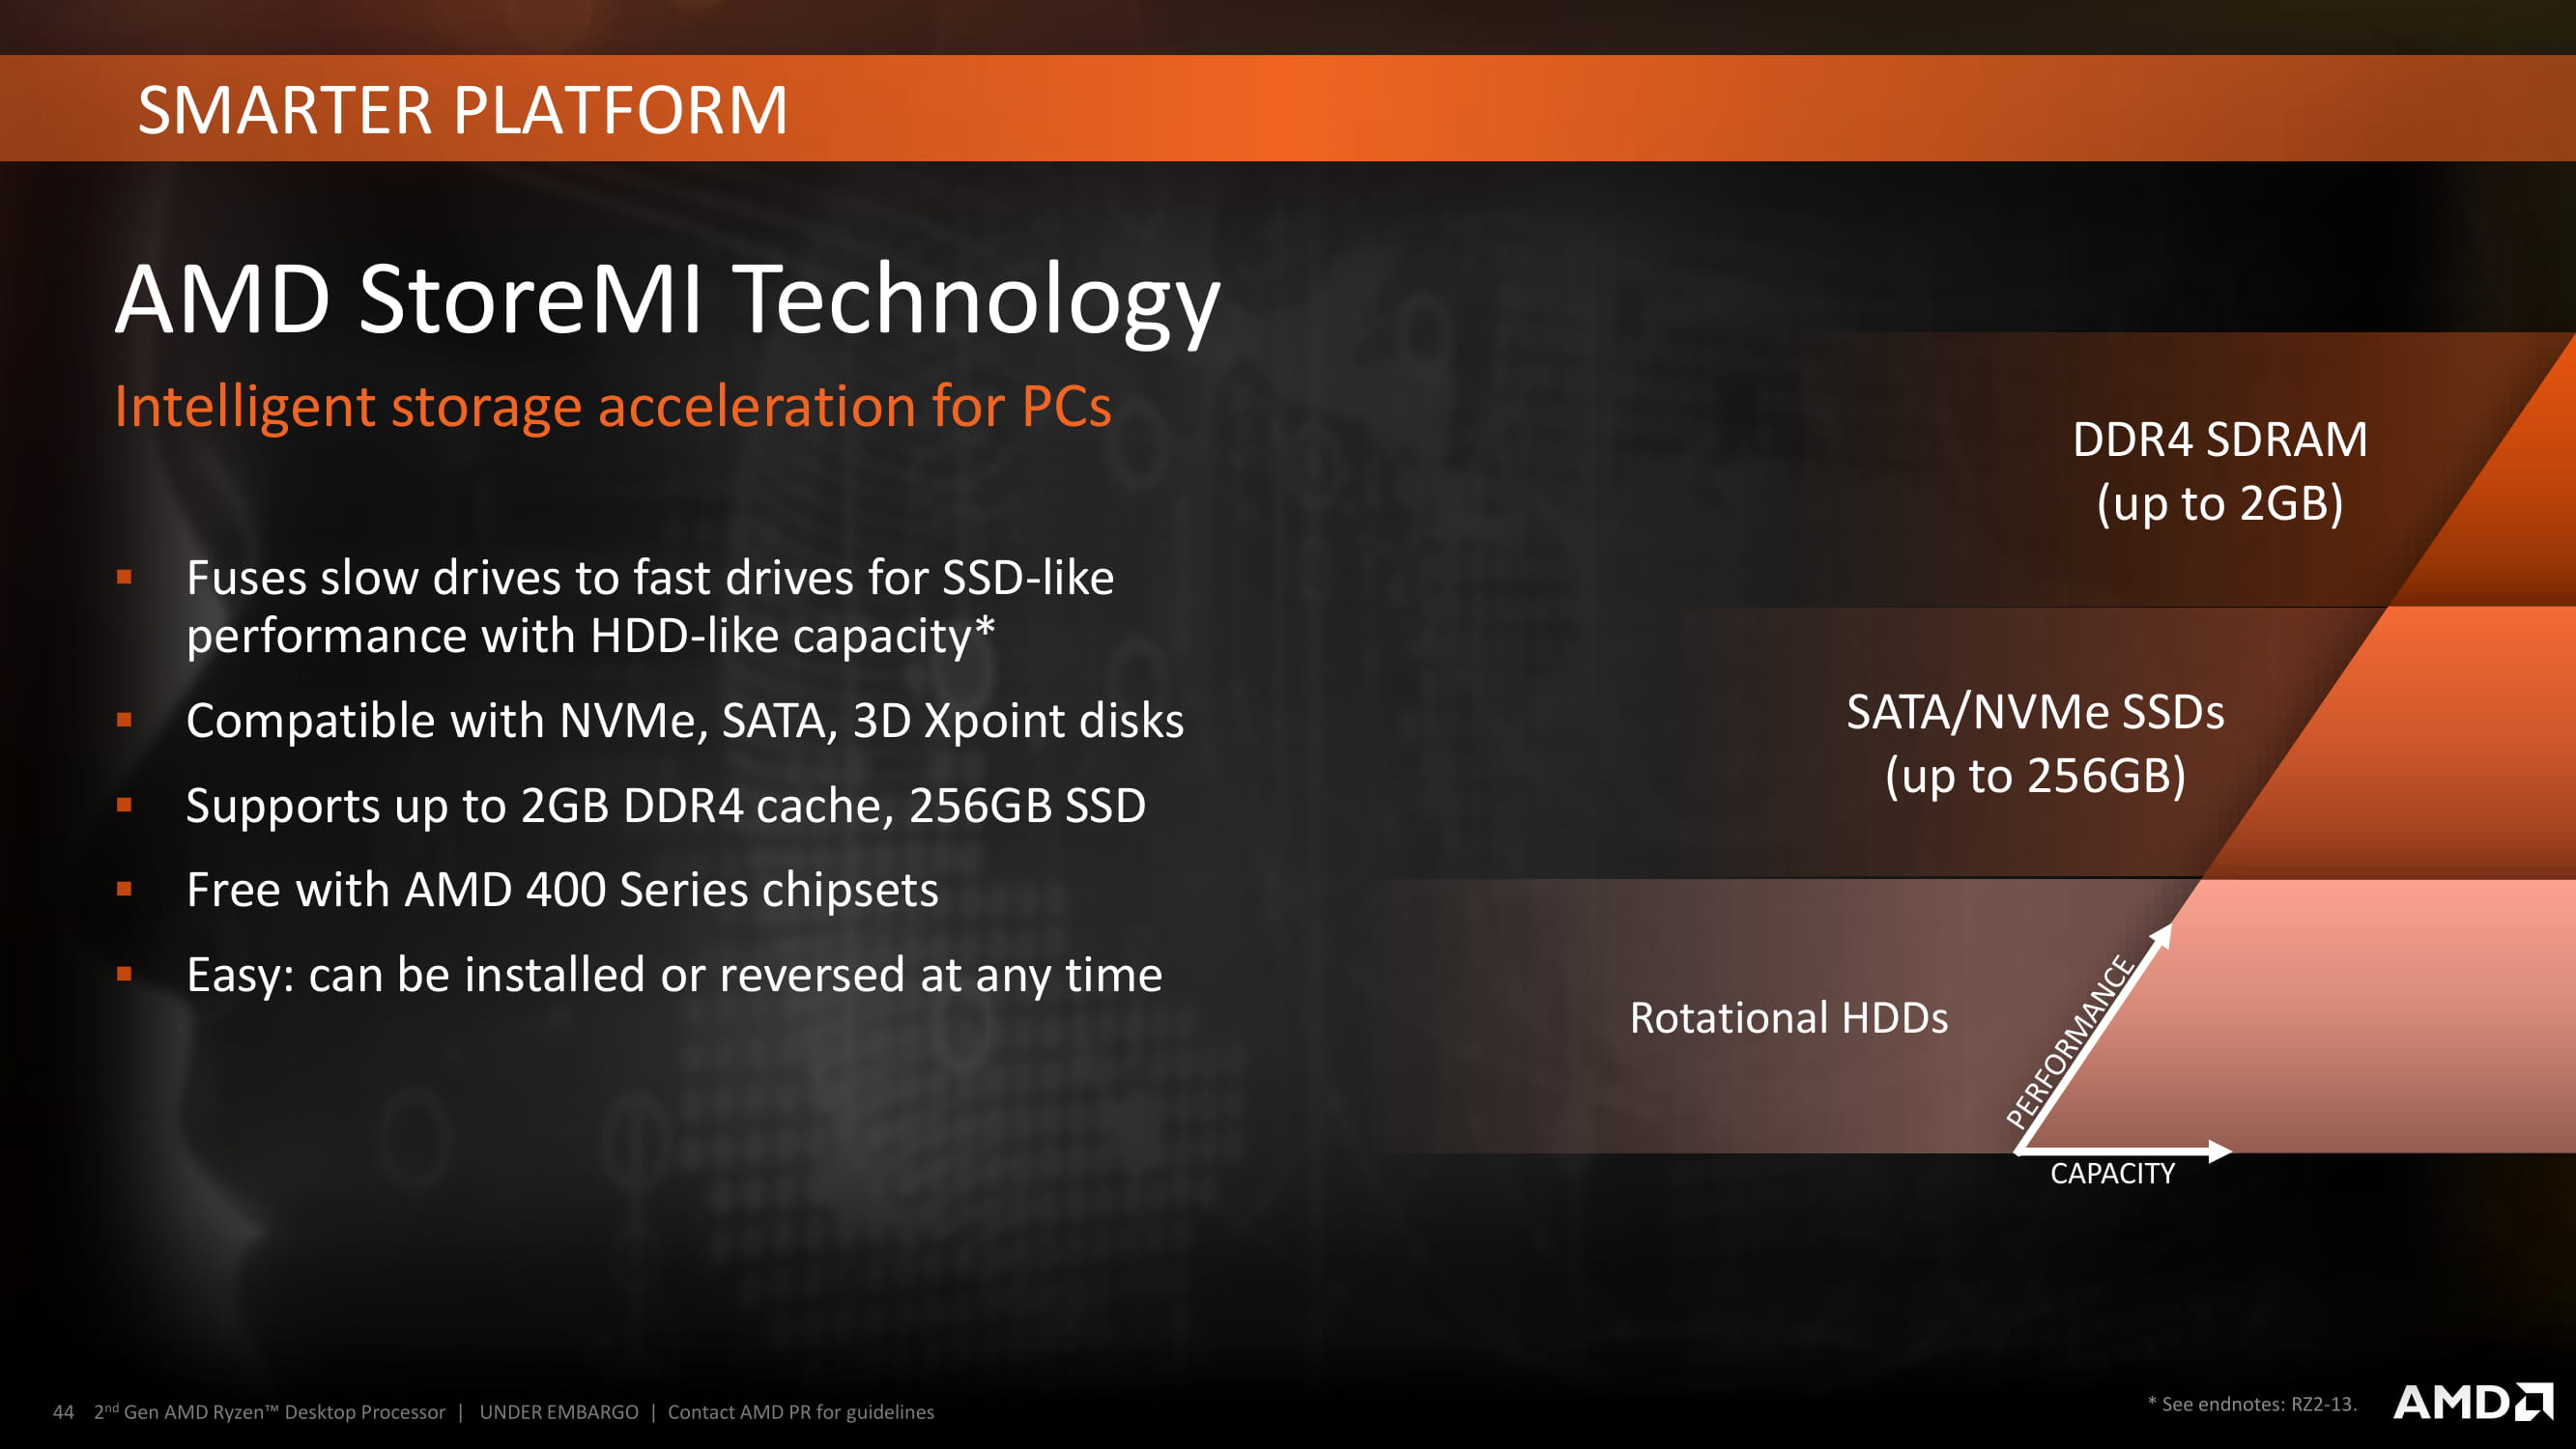 2nd Gen AMD Ryzen Desktop Processor-2-44.jpg